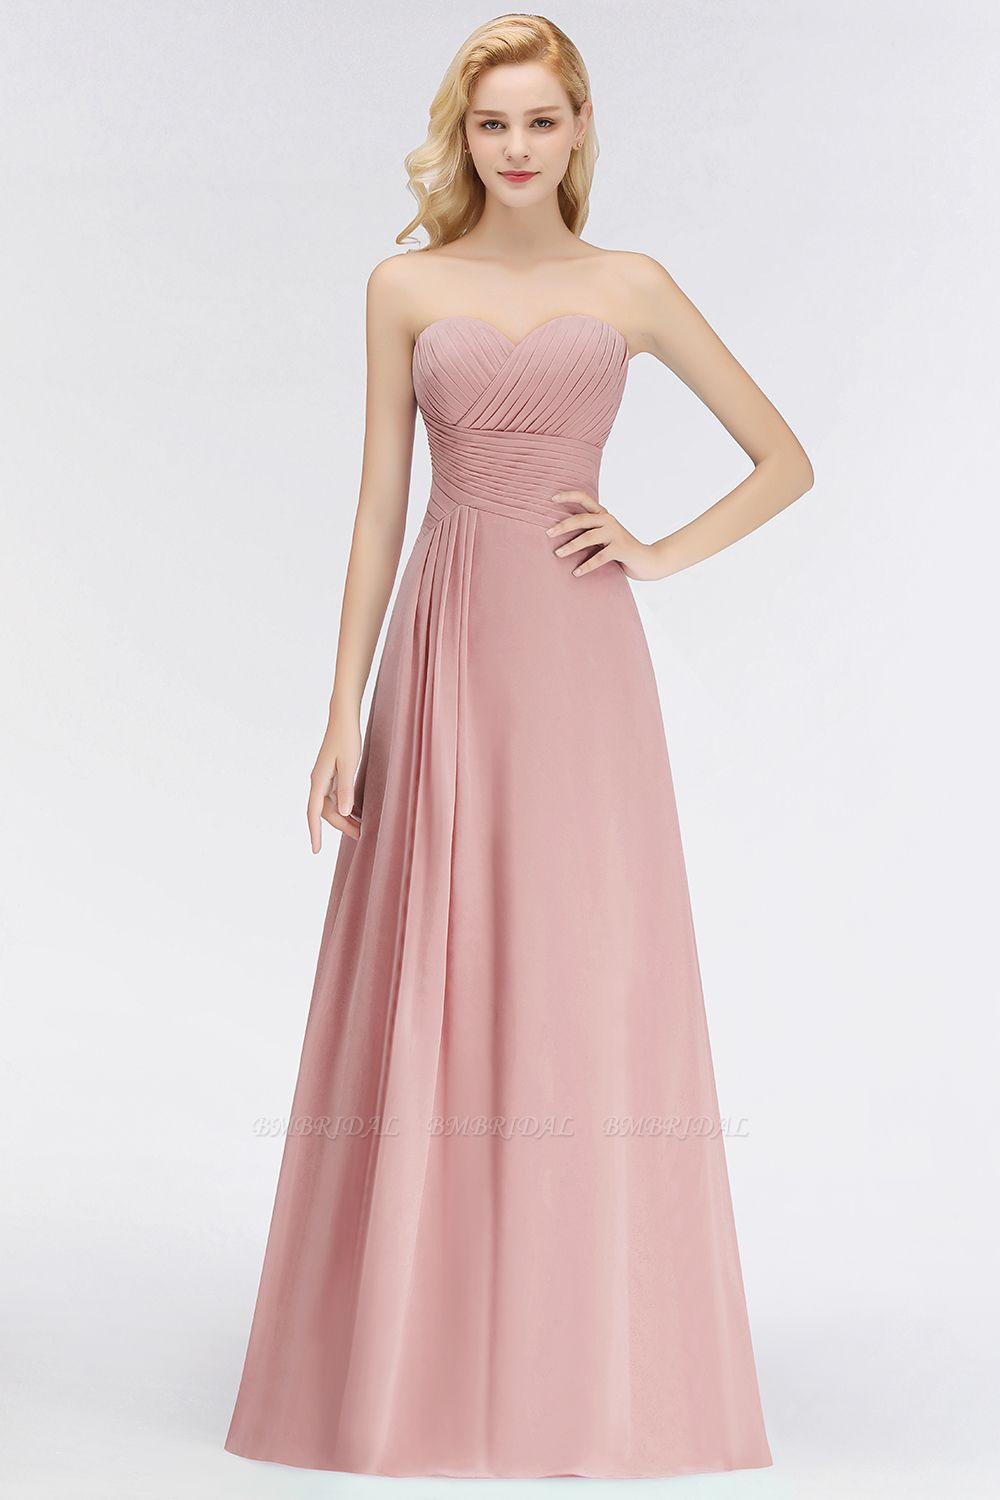 BMbridal Gorgeous Sweetheart Ruched Long Bridesmaid Dress Dusty Rose Chiffon Strapless Maid of Honor Dress